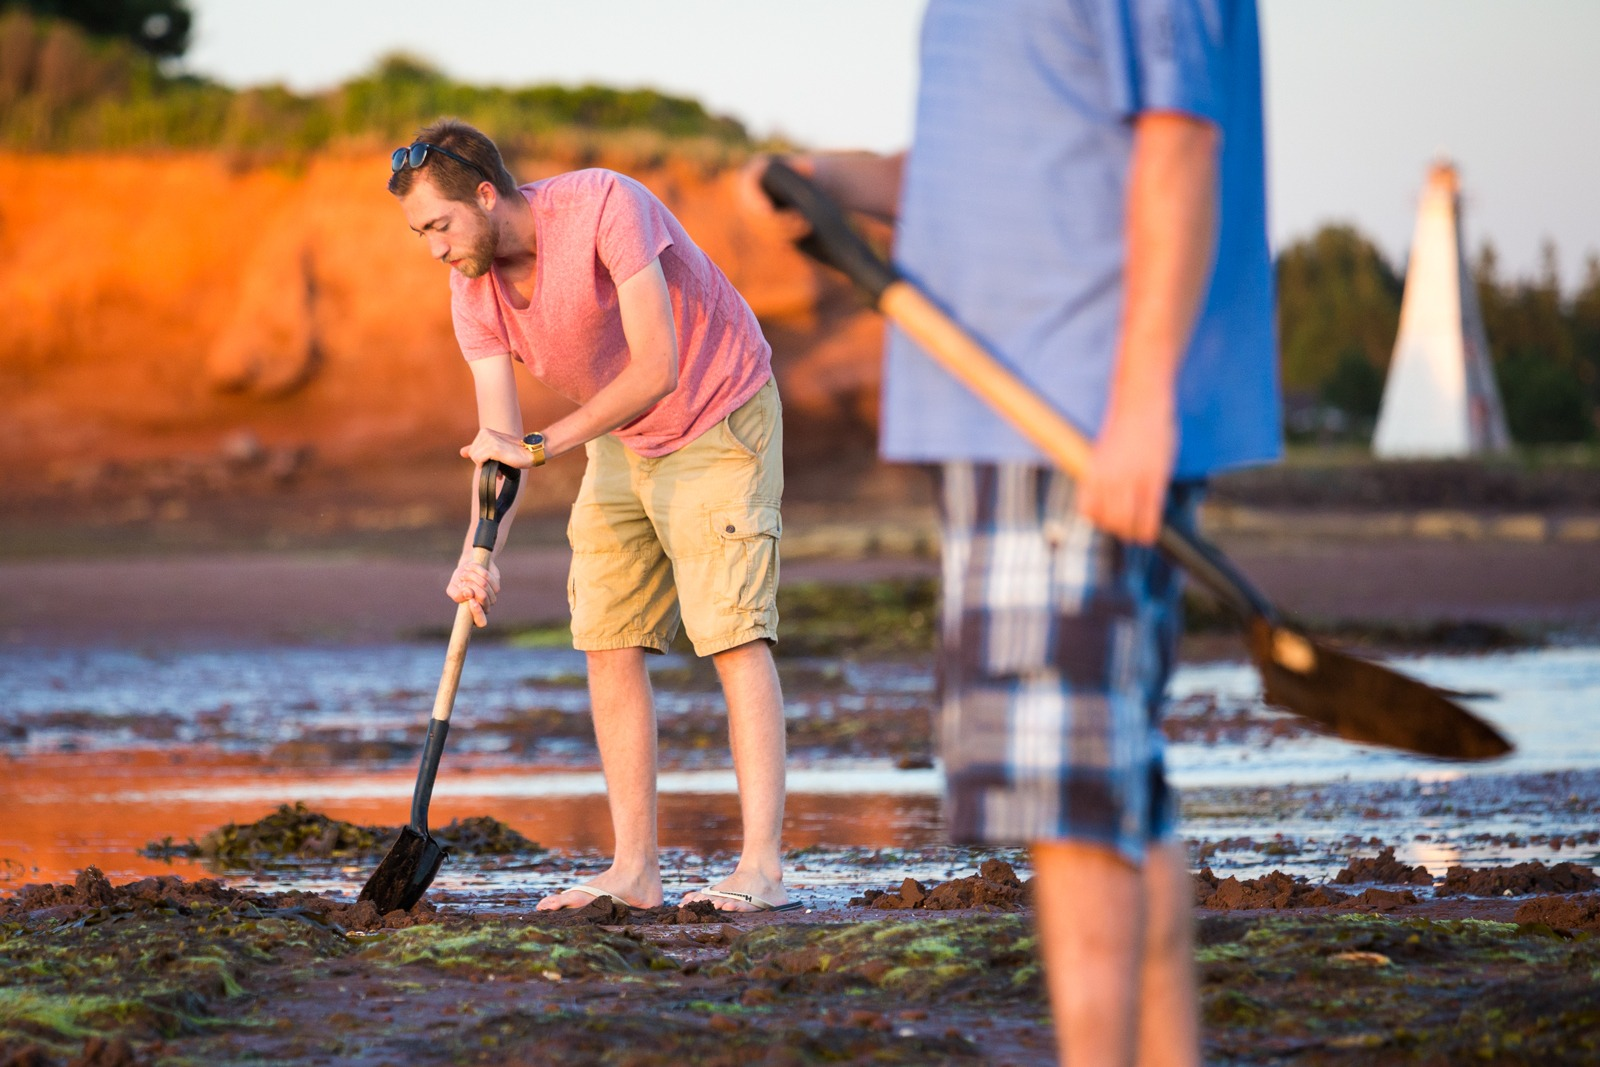 Clam digging in PEI Photo Credit: ©Tourism PEI / Carrie Gregory